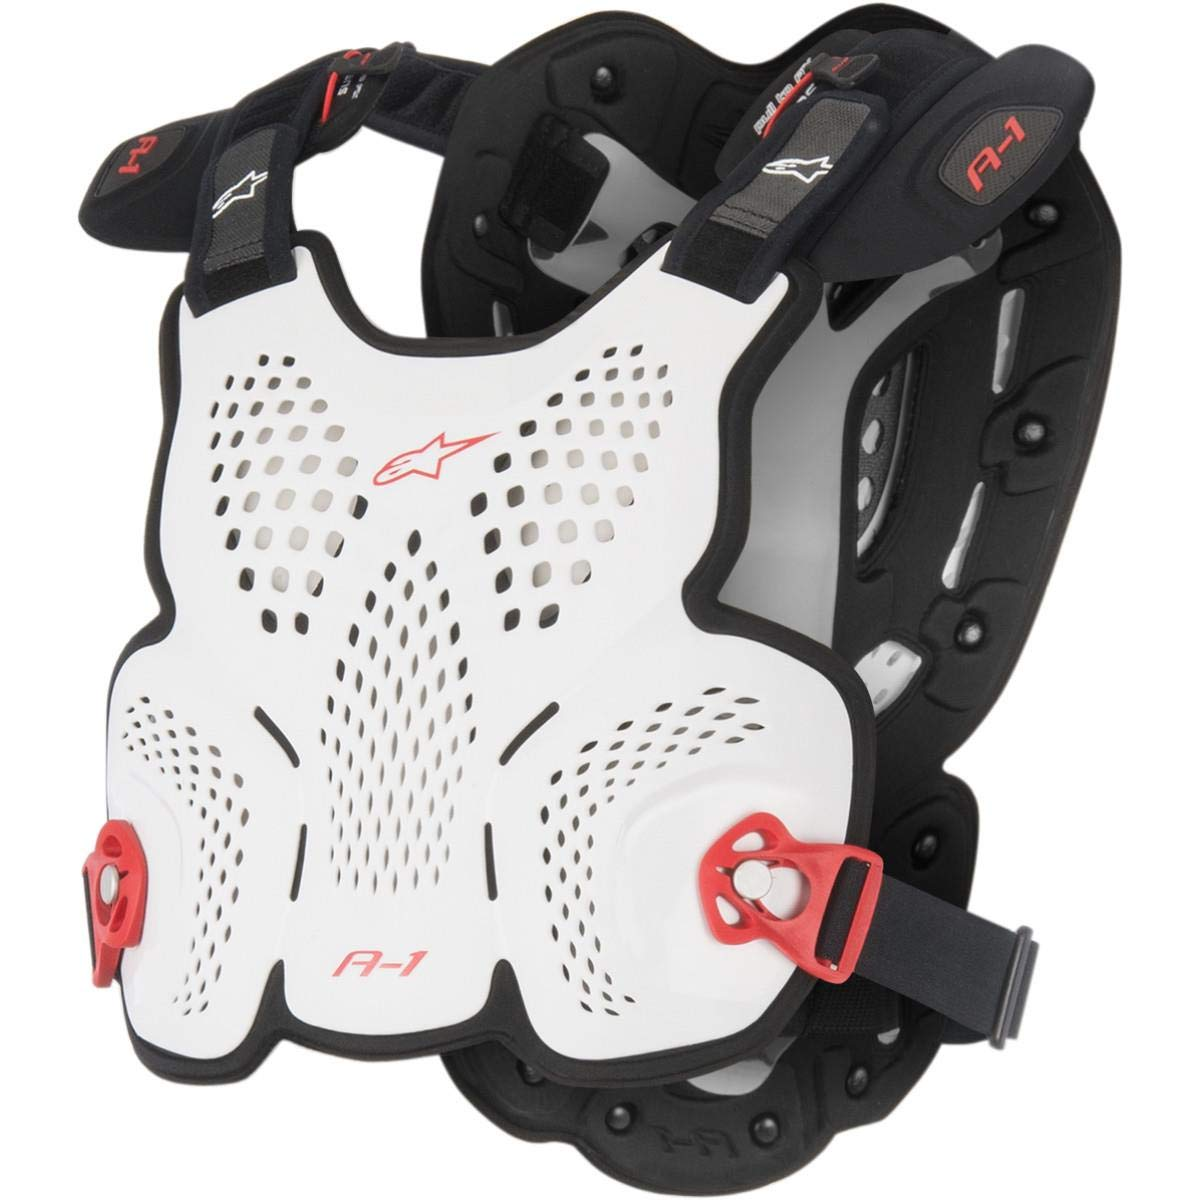 Alpinestars White-Black-Red A1 Roost Guard MX Chest Protector